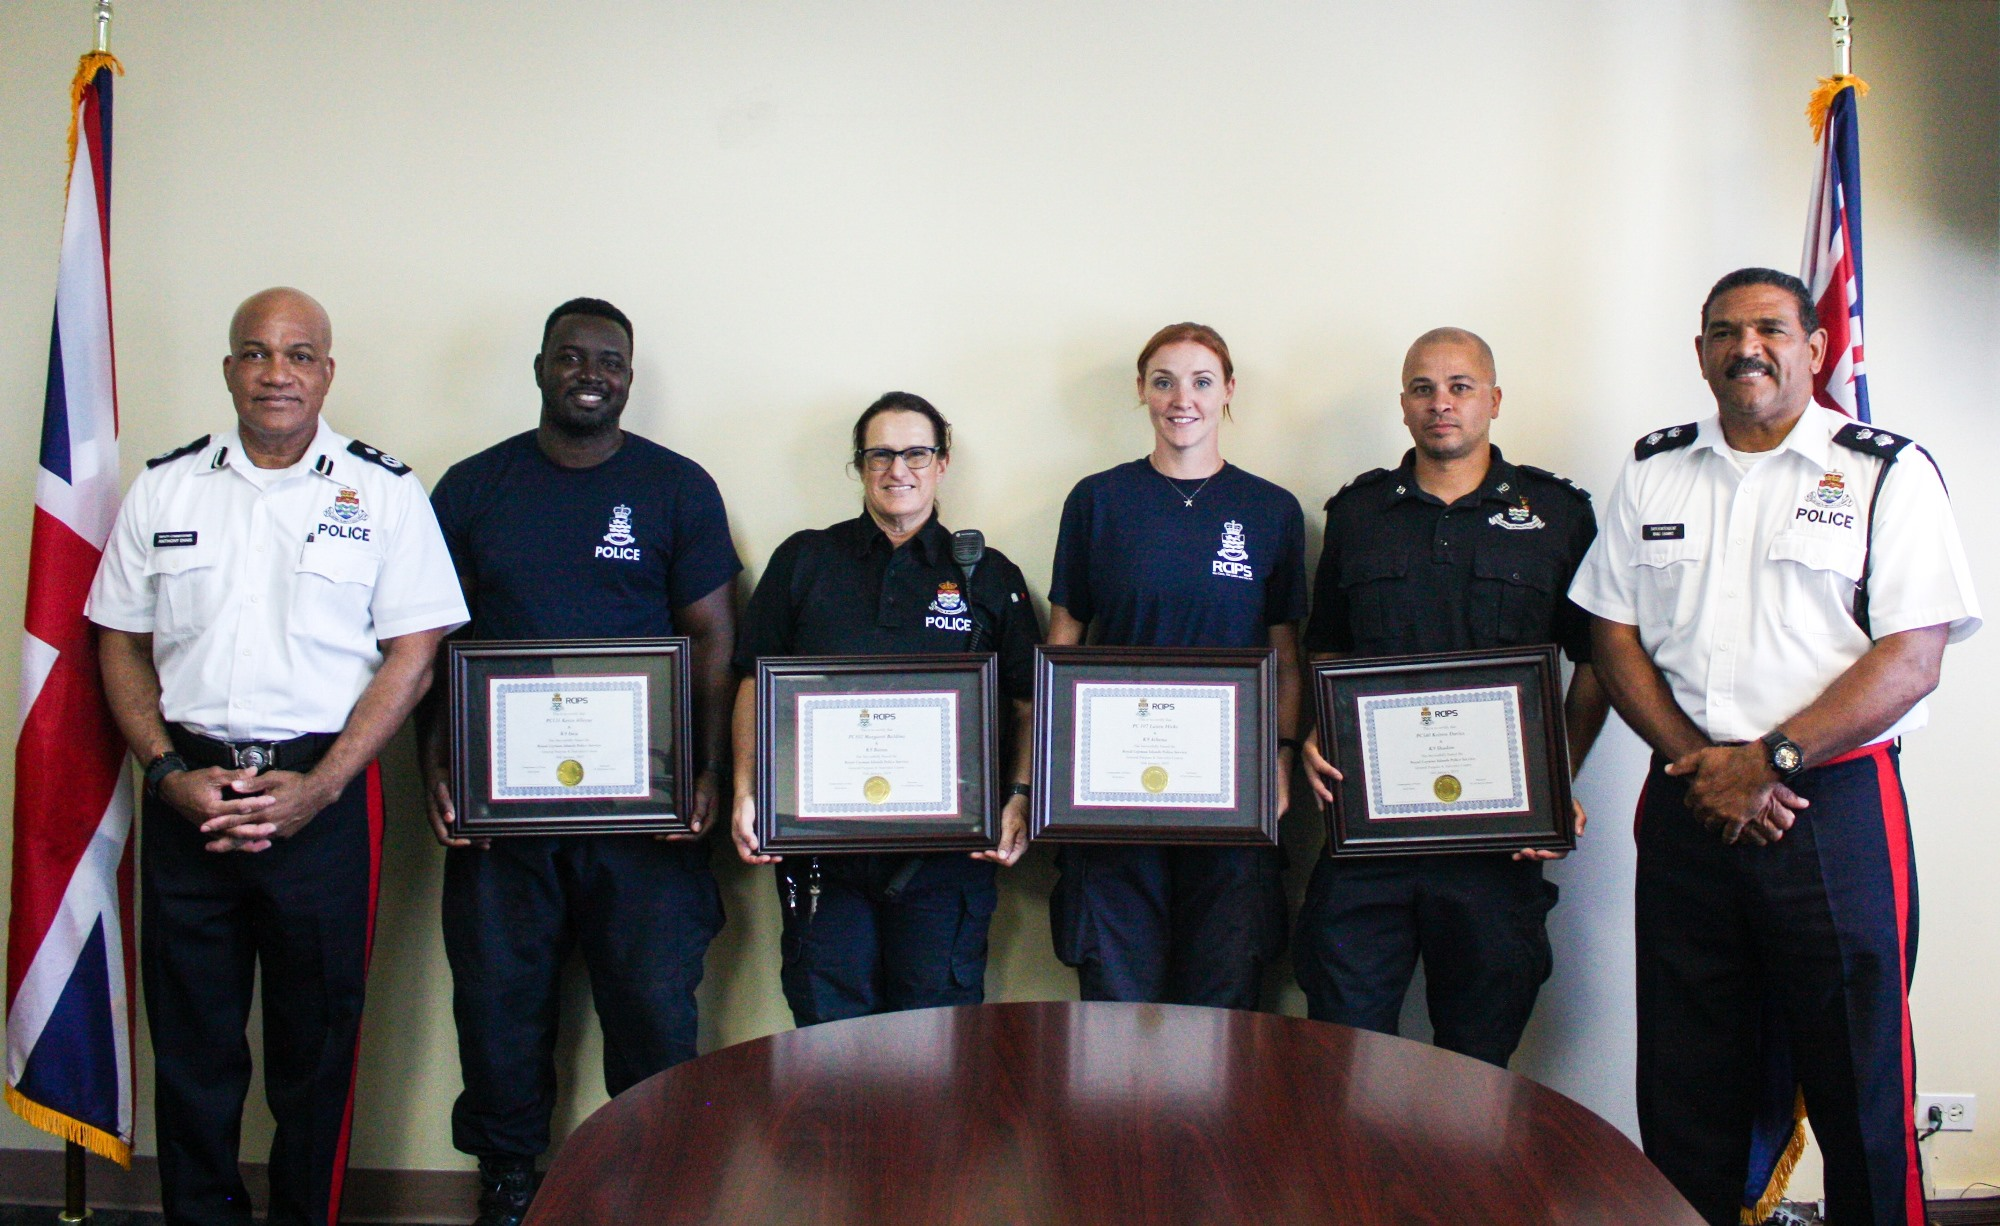 The K-9 officers are presented their certificates by Deputy Commissioner Ennis and A/Superintendent Brad Ebanks